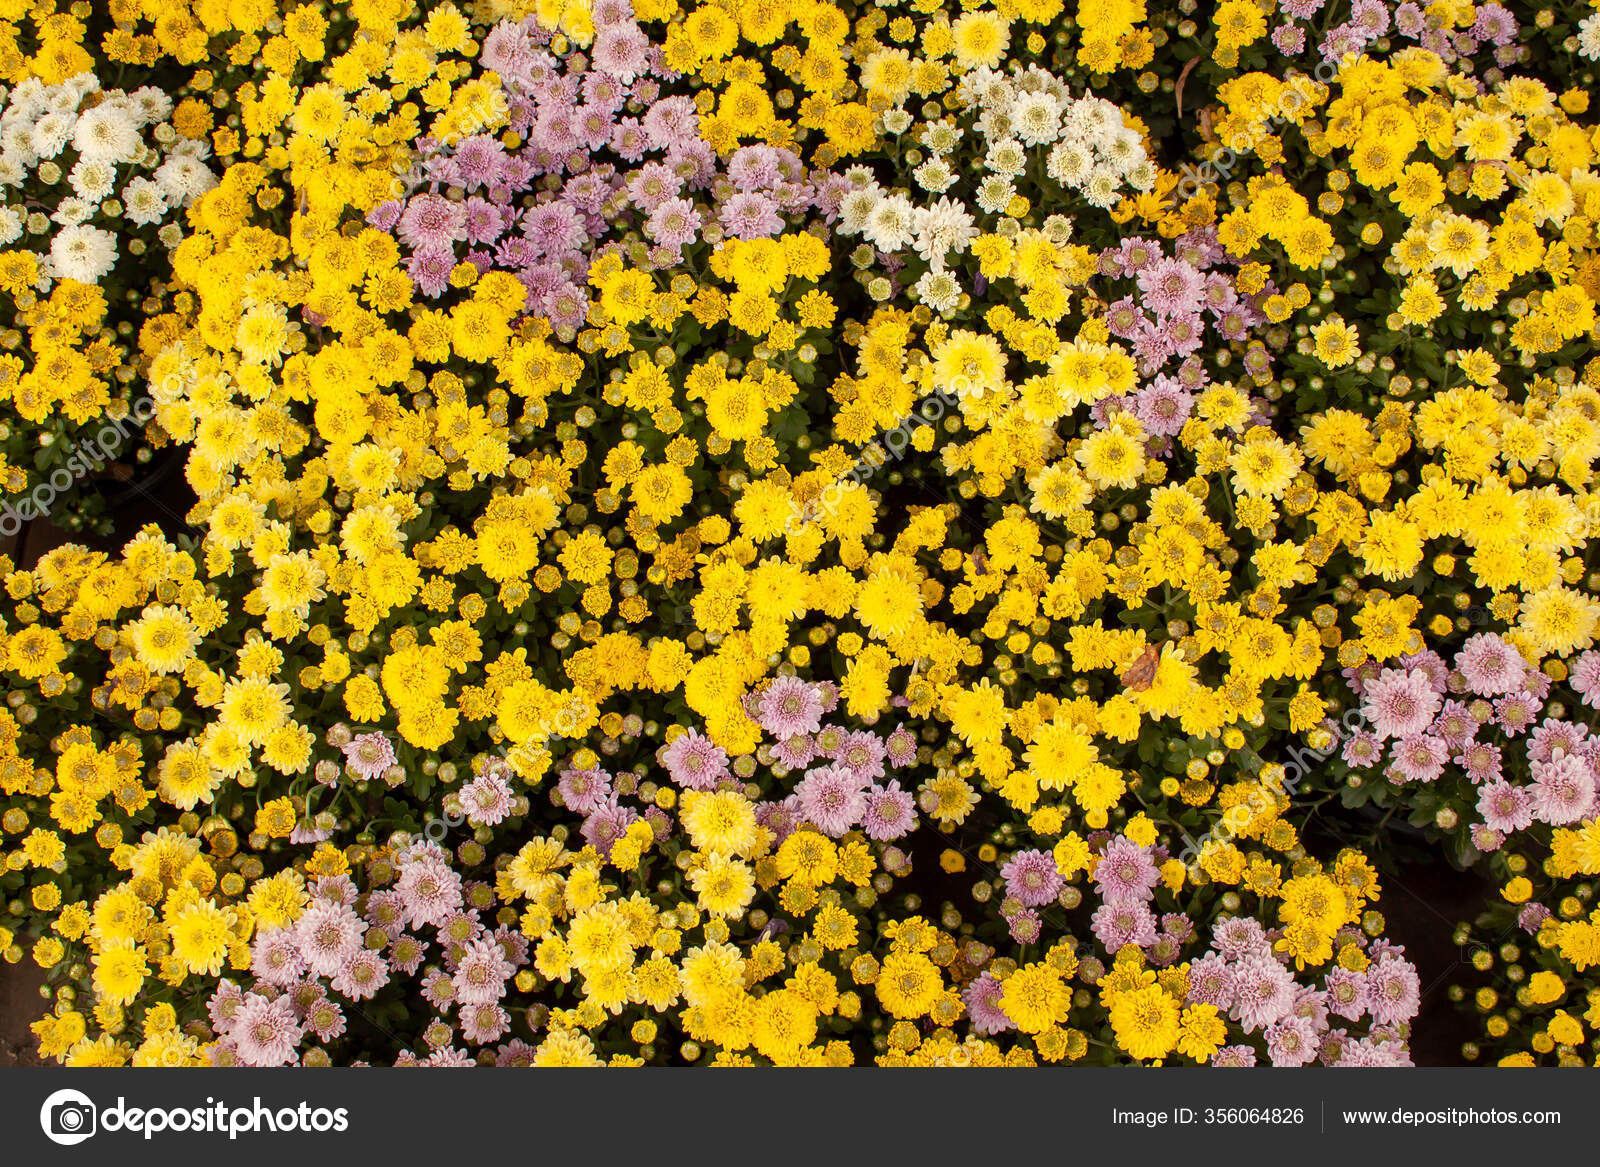 Yellow Purple Petals Chrysanths Flowering Blooming Small Bud Green Leaves Stock Photo C Aimful 356064826